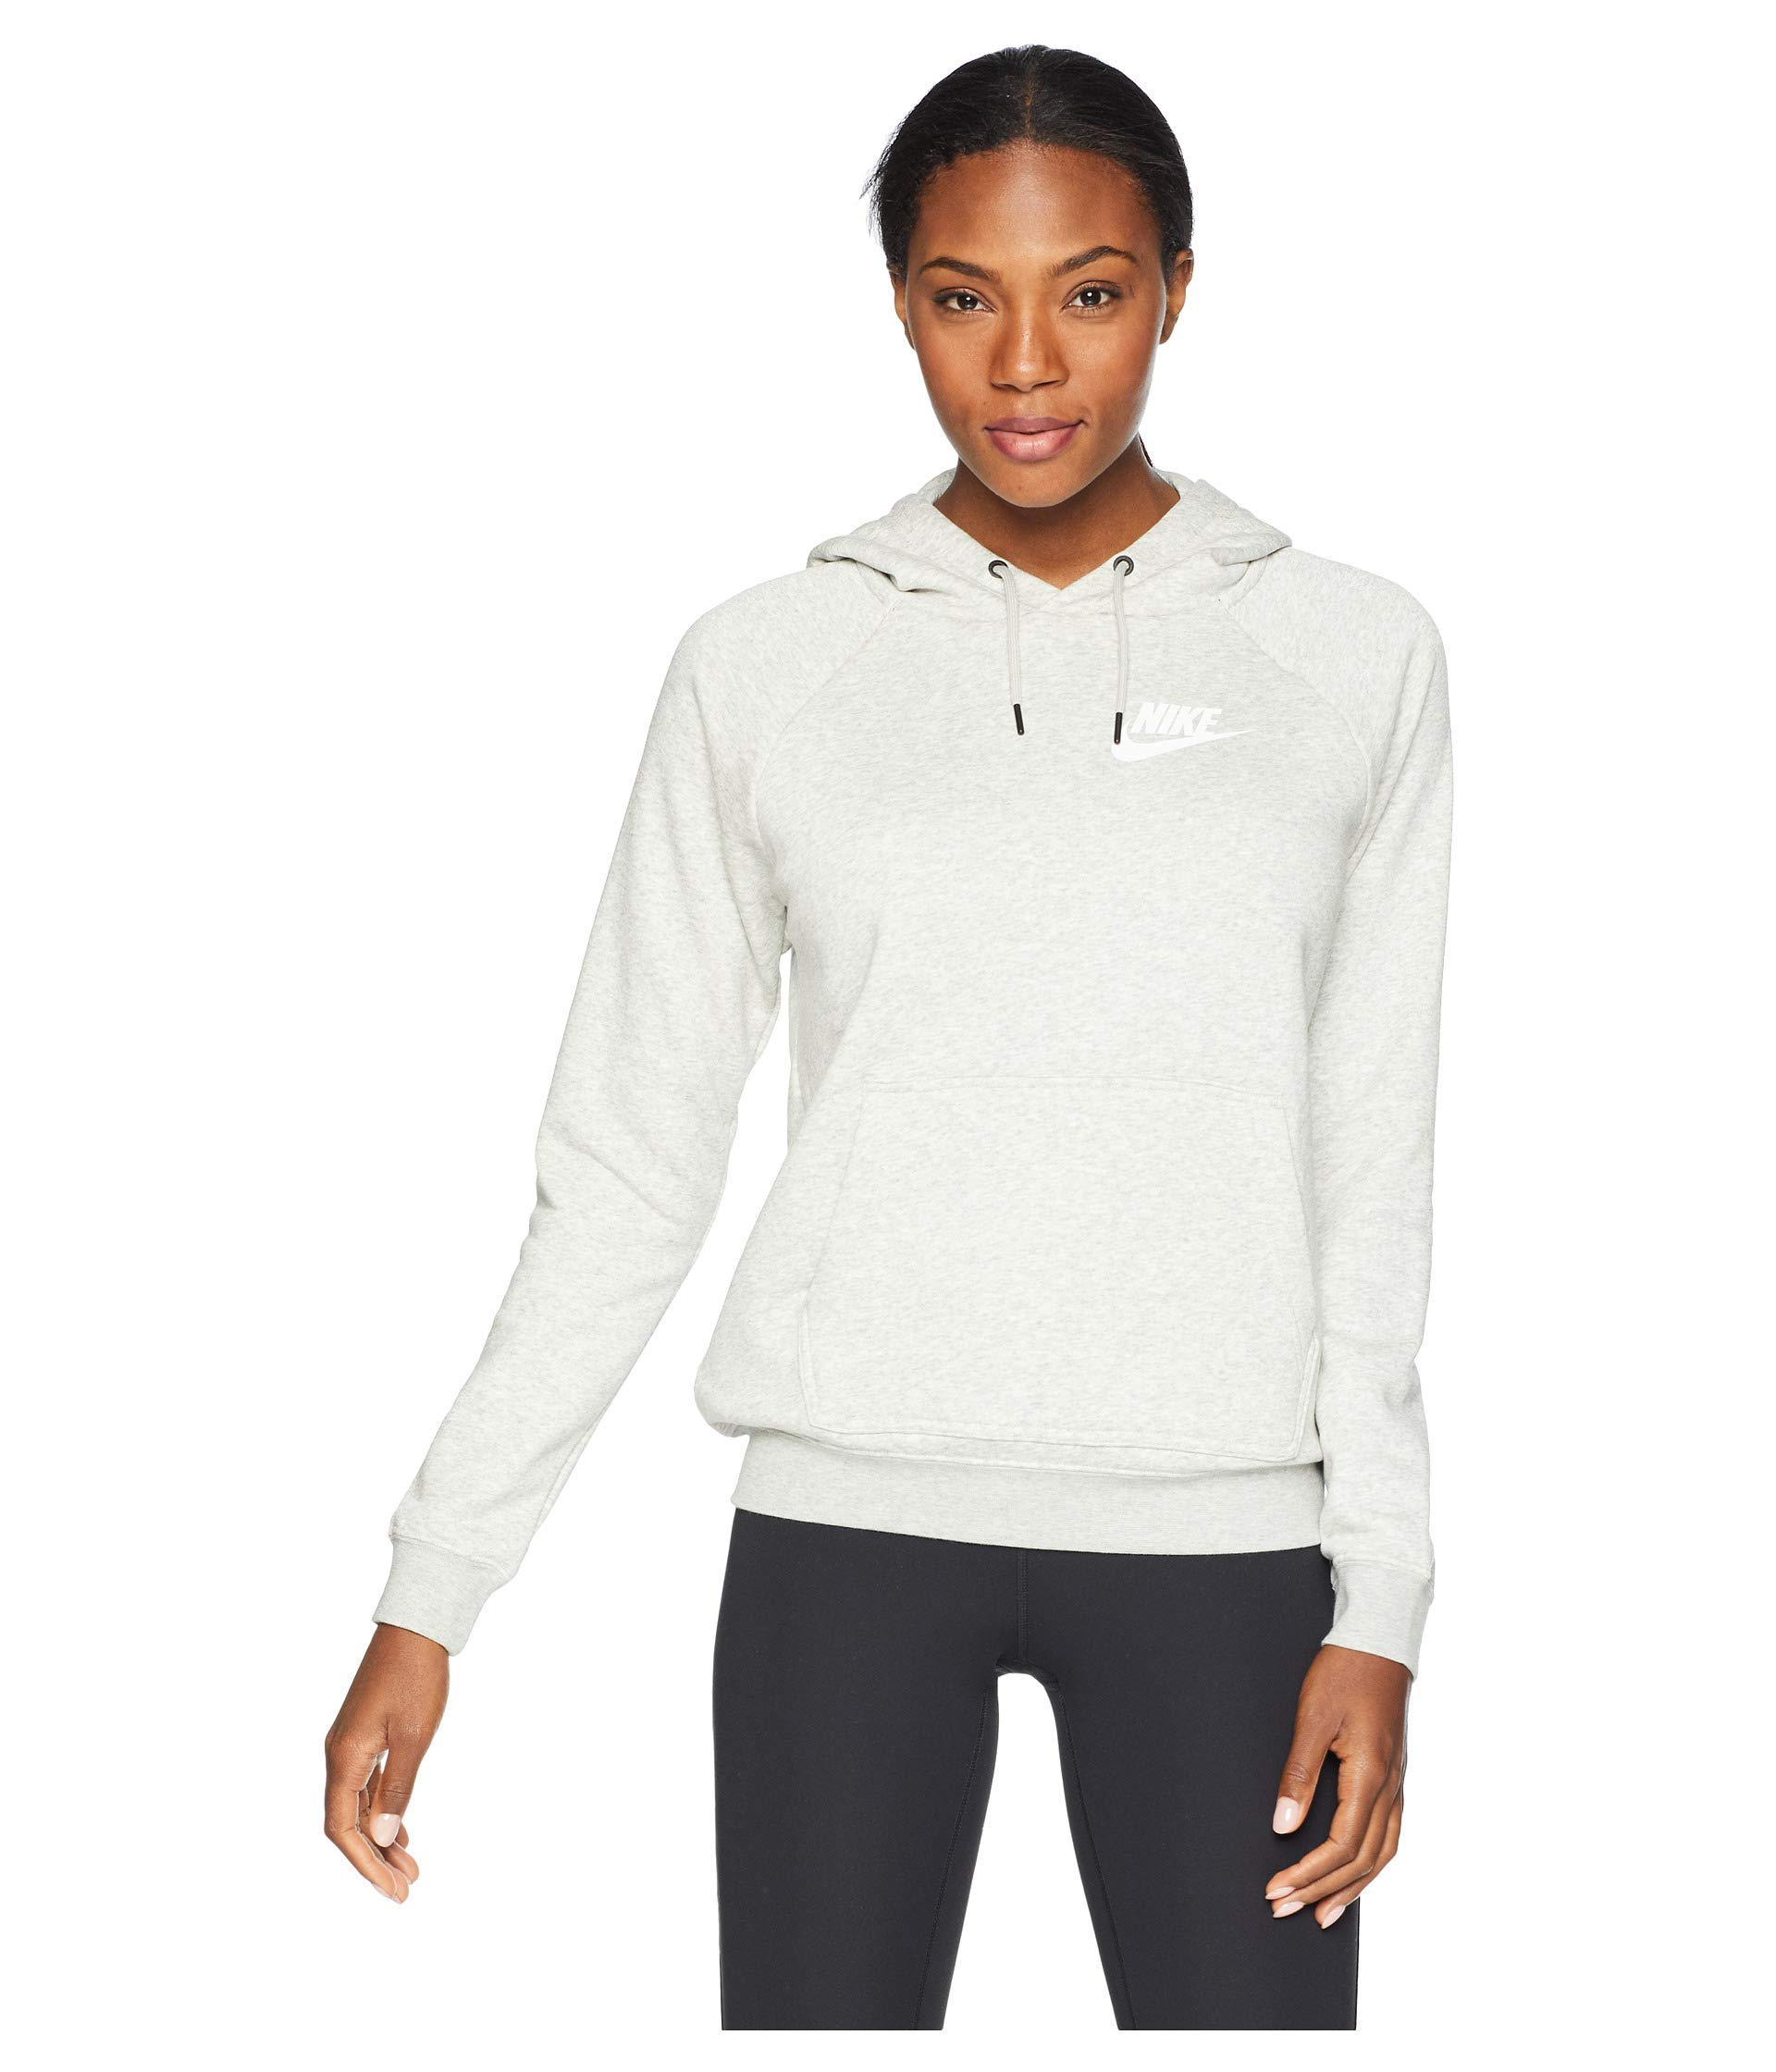 NIKE Sportswear Rally Women's Hoodie Grey Heather/Pale Grey/White aj6315-050 (Size XS)